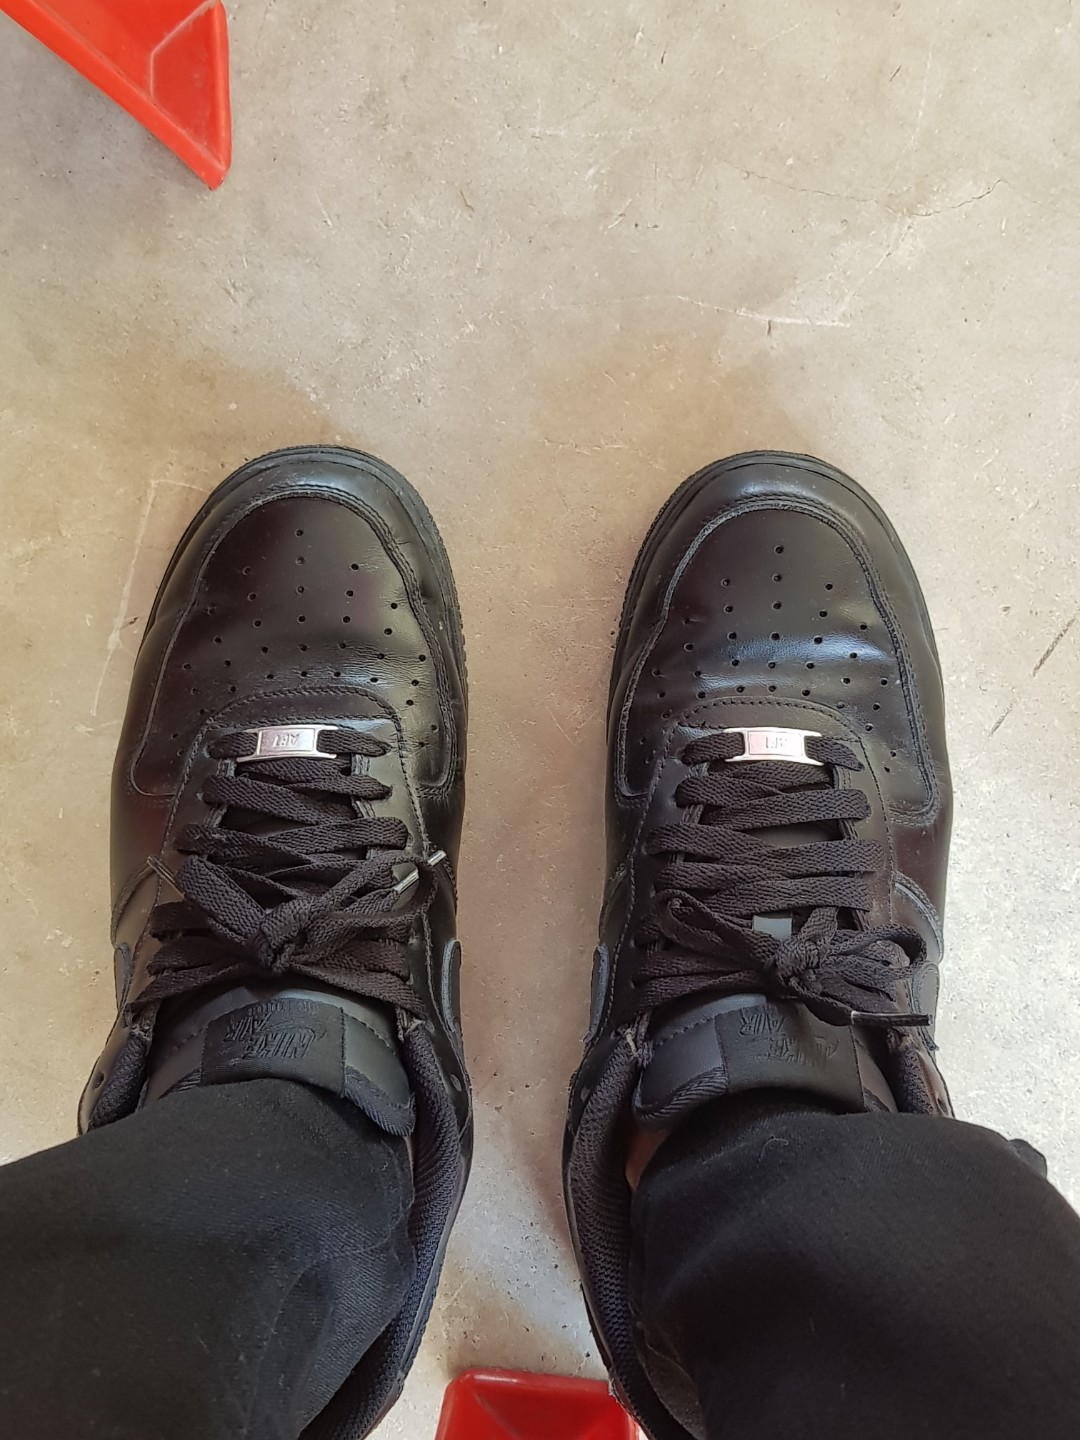 08e9f241311 Nike Air Force 1s Blacked Out, Men's Fashion, Footwear, Sneakers on ...